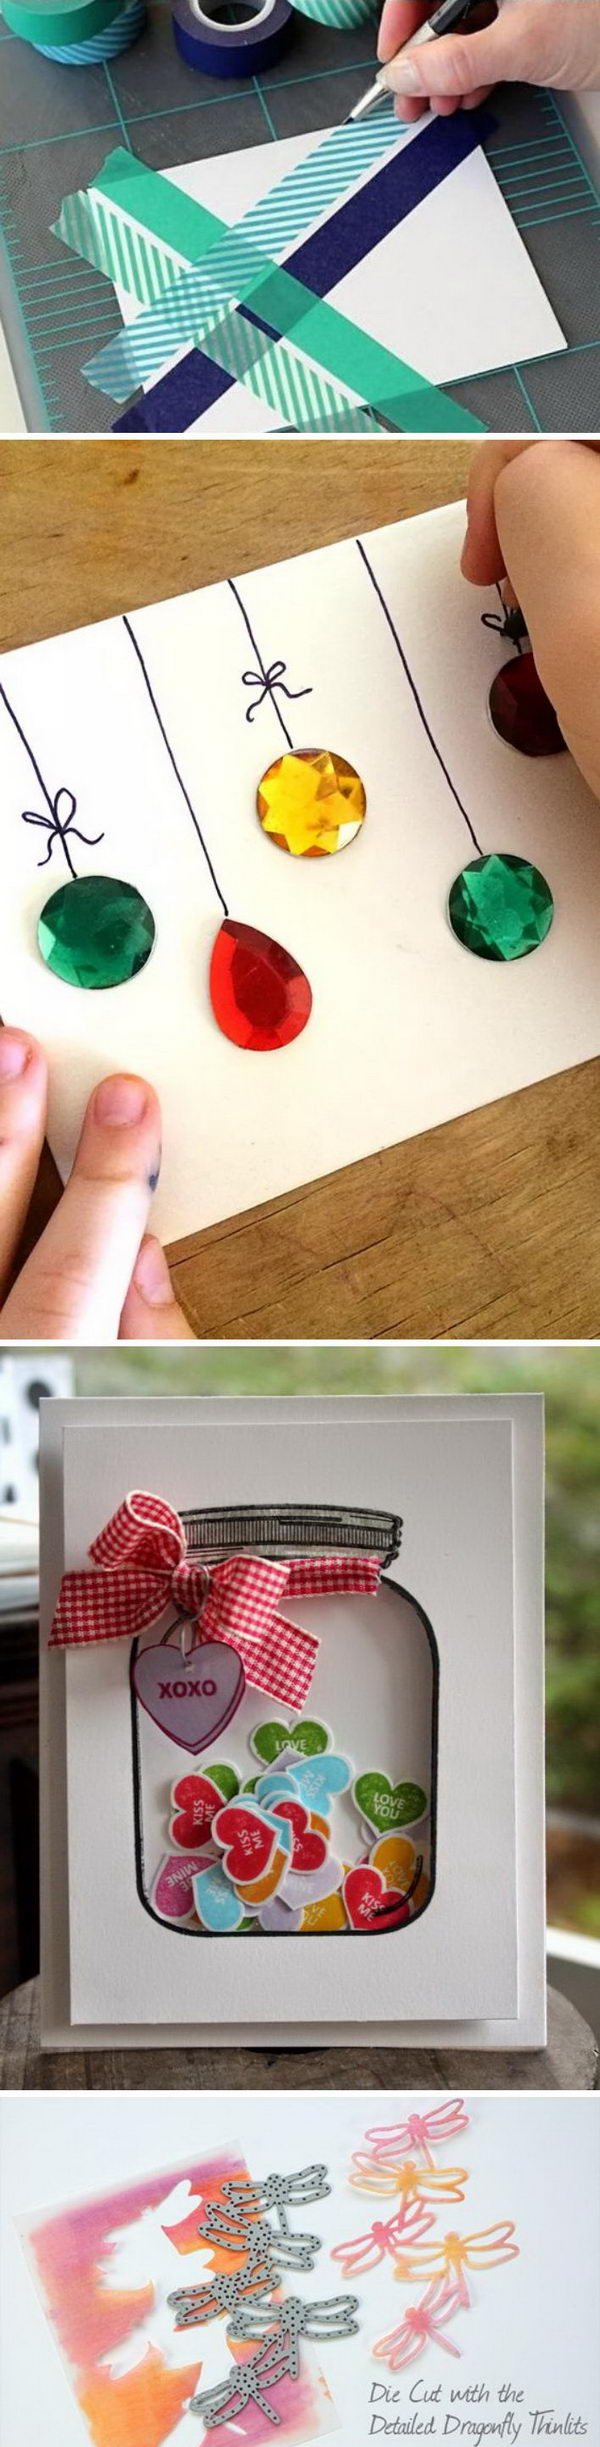 how to make handmade christmas cards step by step